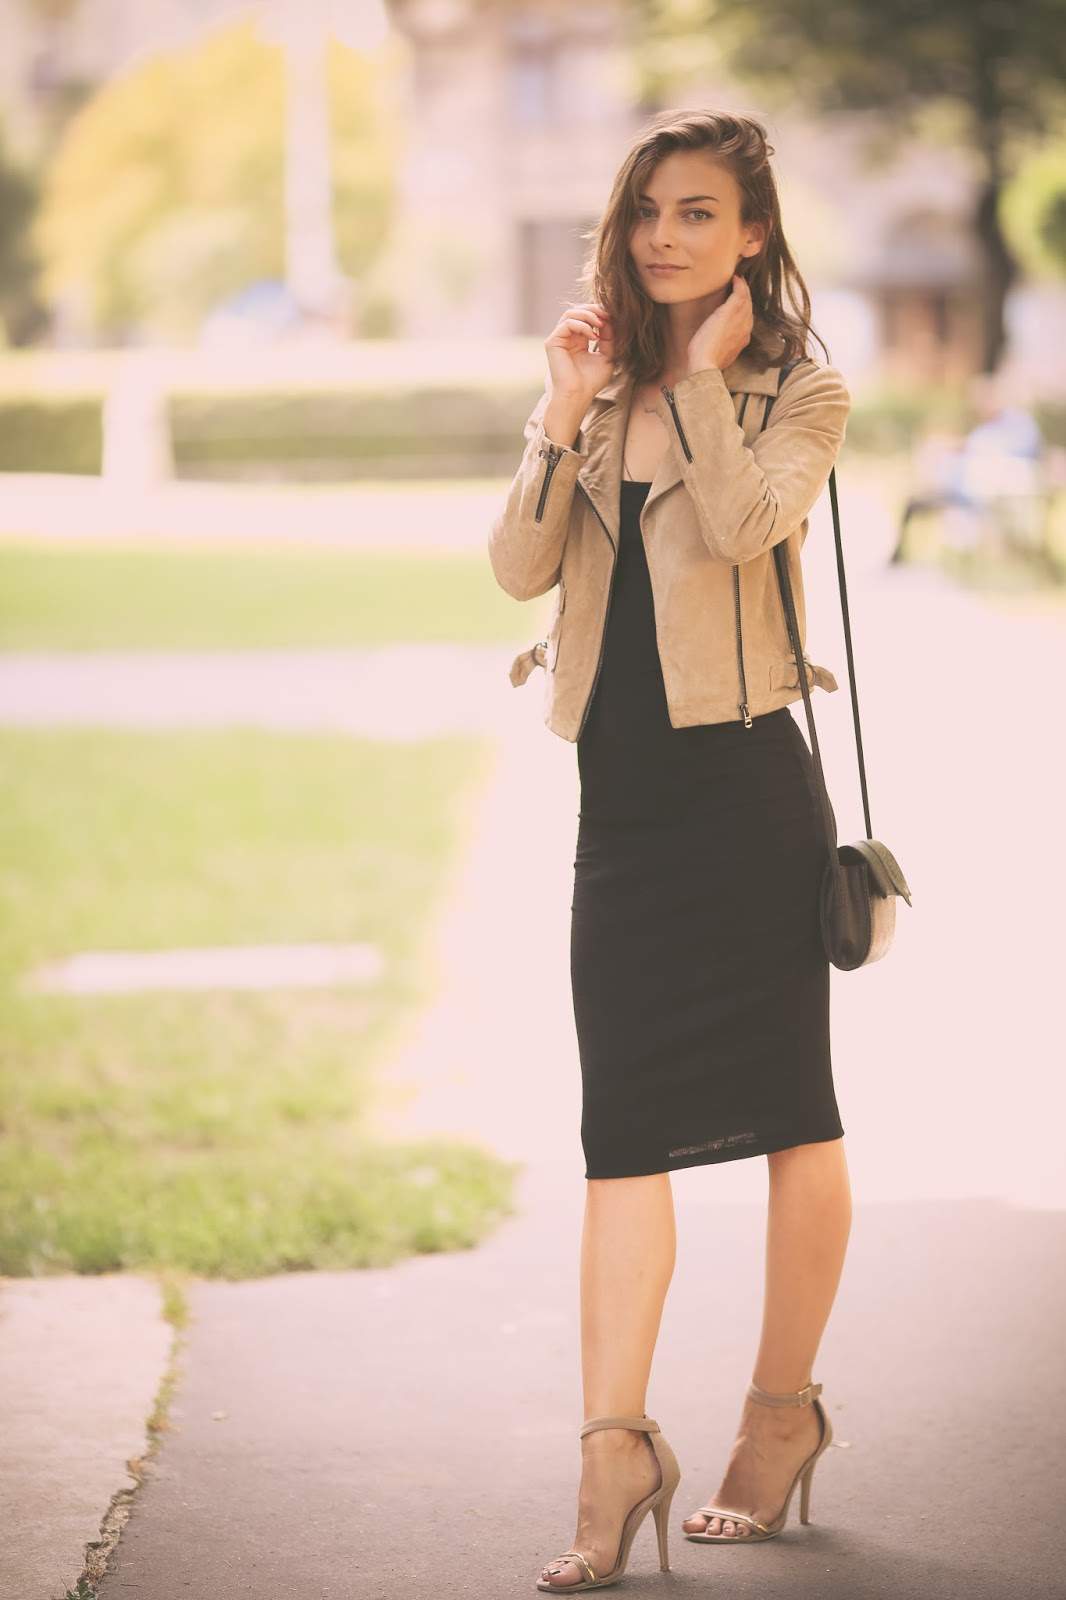 Wearing The Little Black Dress With A Beige Jacket